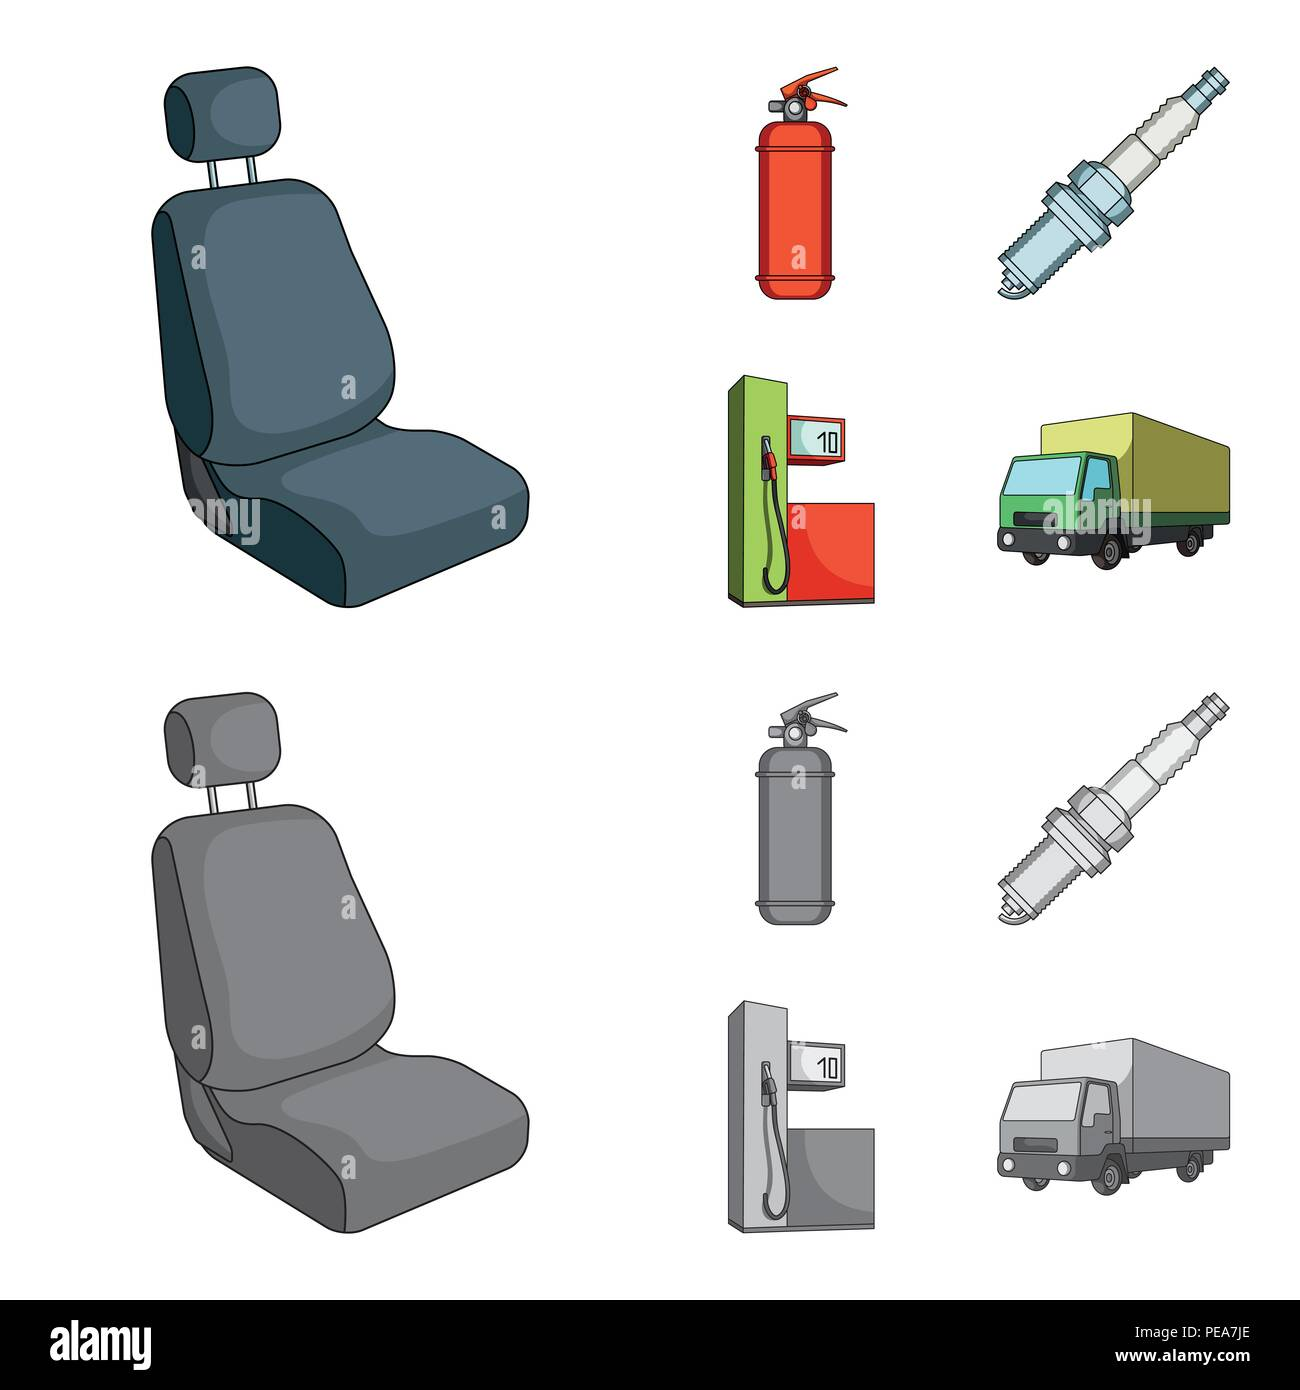 Chair With Headrest Fire Extinguisher Car Candle Petrol Station Set Collection Icons In Cartoonmonochrome Style Vector Symbol Stock Illustrat